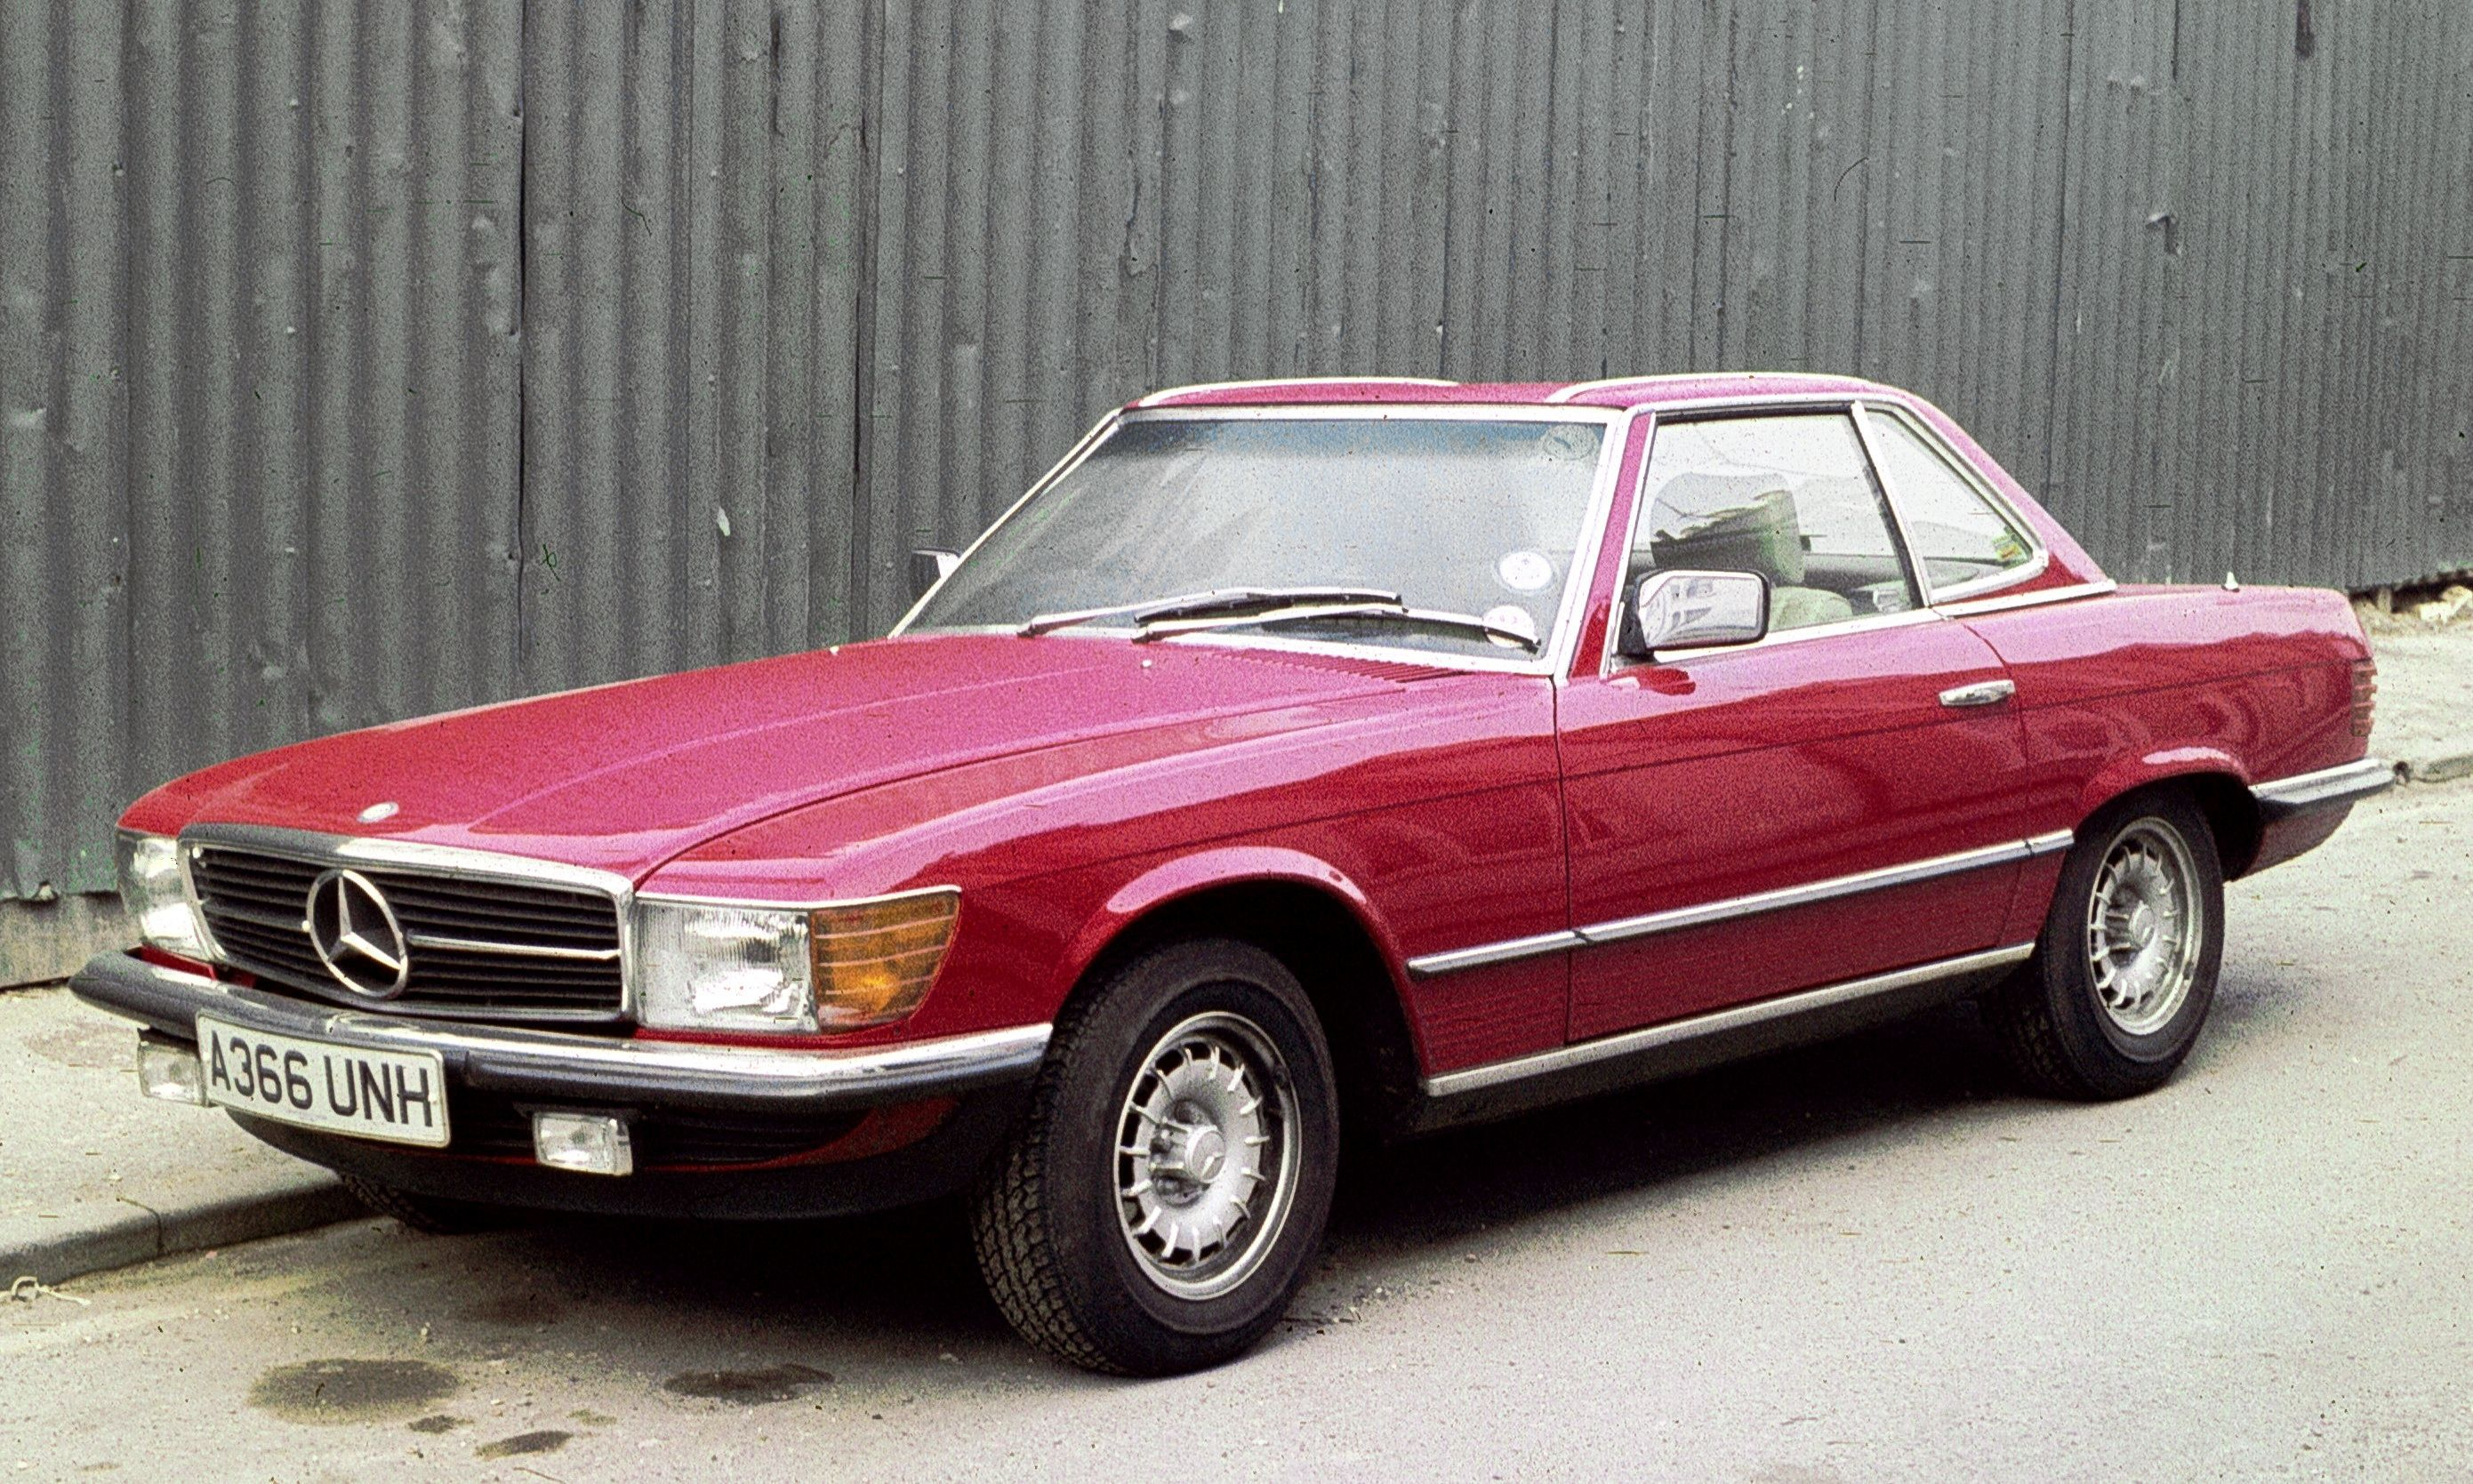 1974 red Mercedes Benz 350SL coupe